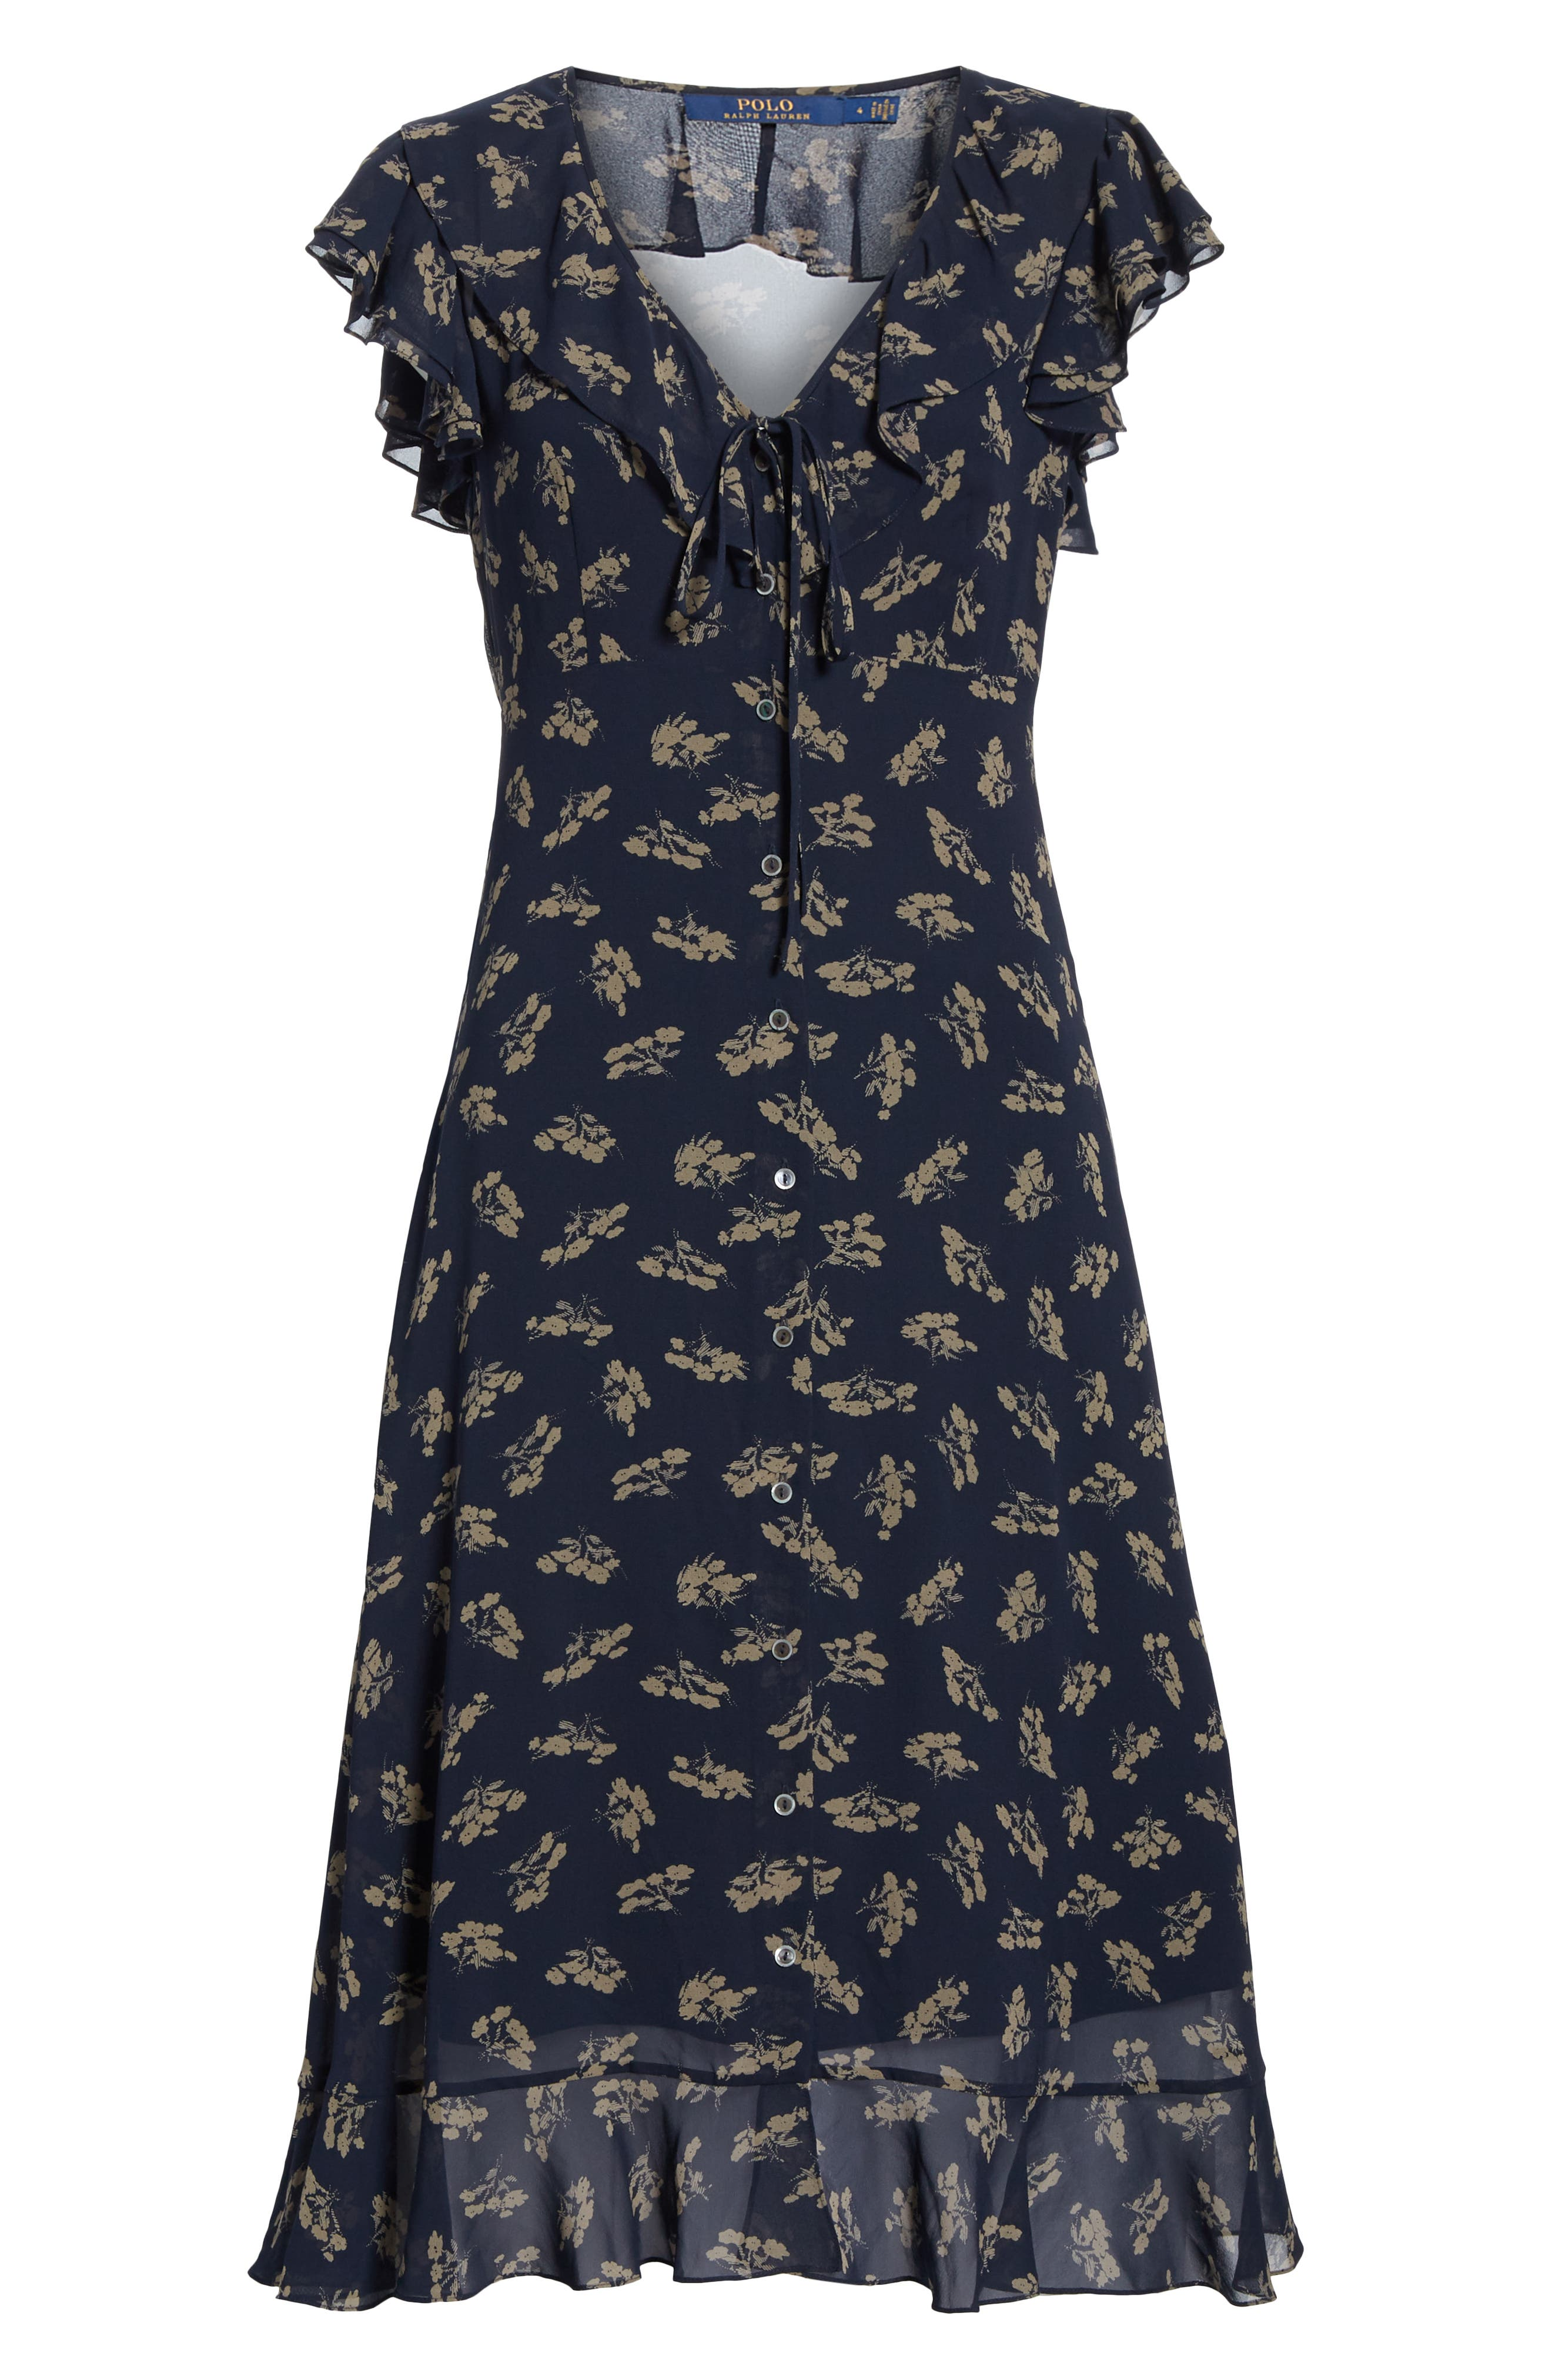 Ruffled Floral Midi Dress,                             Alternate thumbnail 6, color,                             ETCHING FLORAL